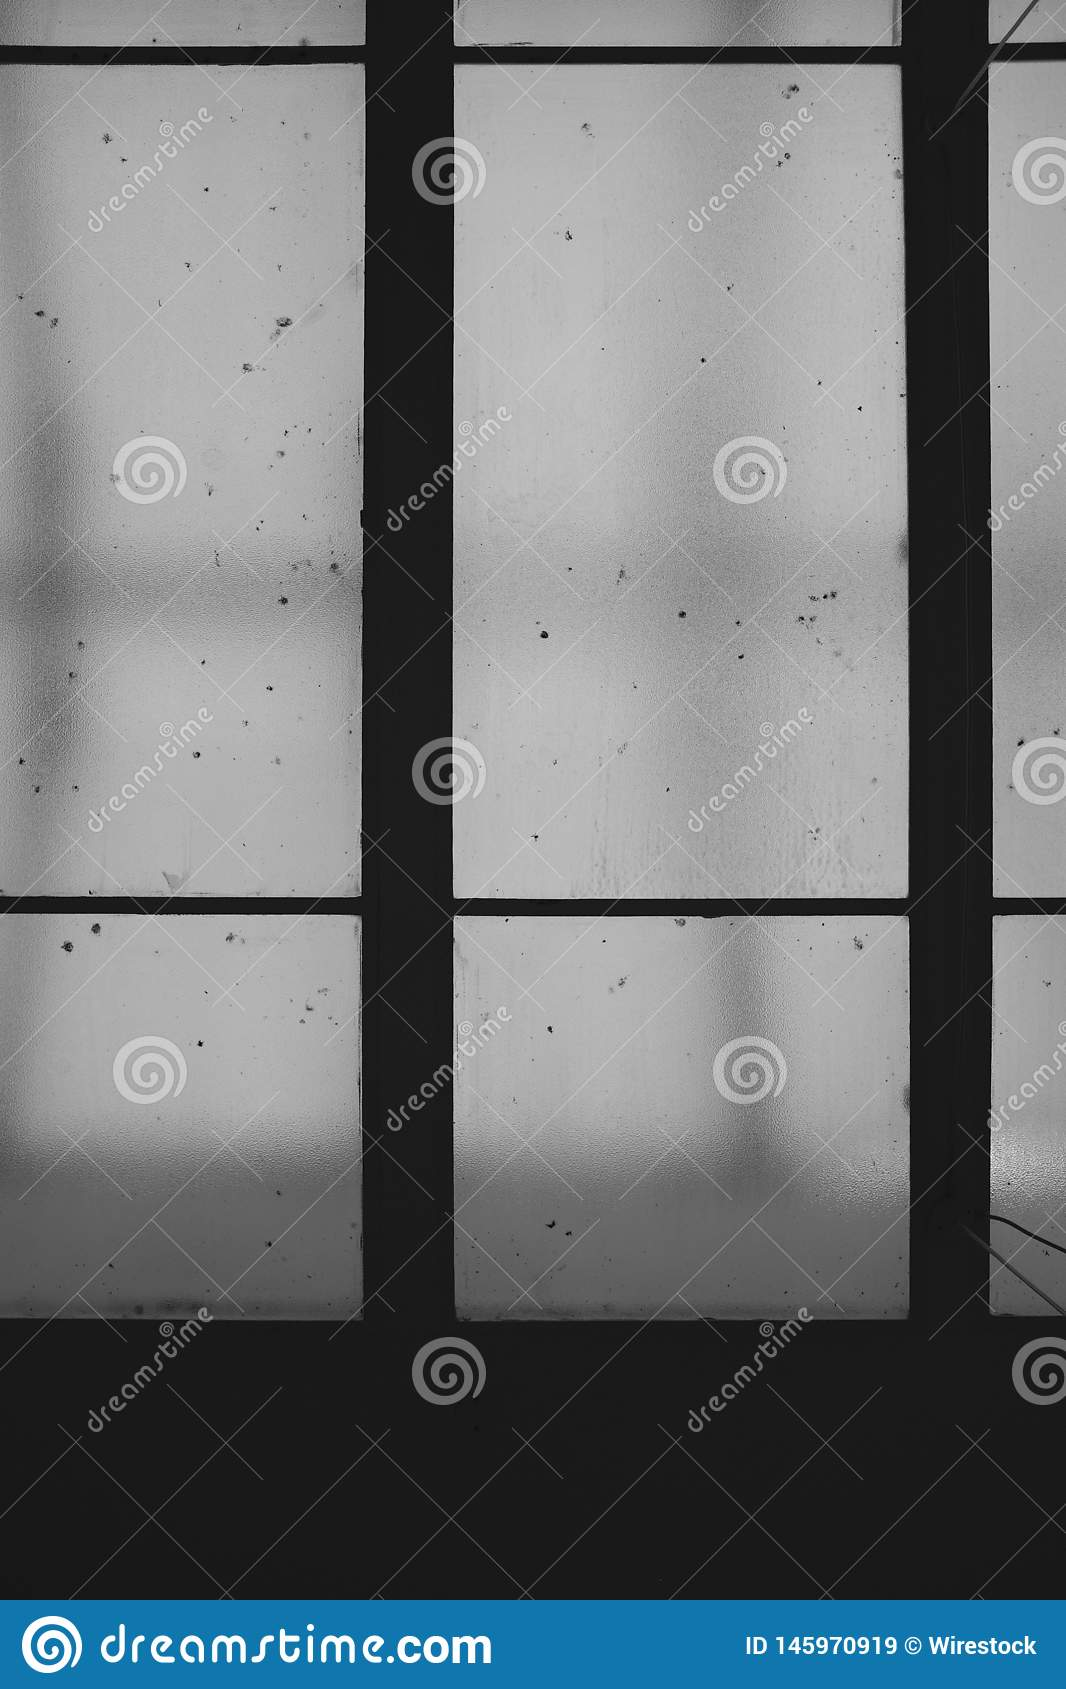 Black and white shadow pattern for background